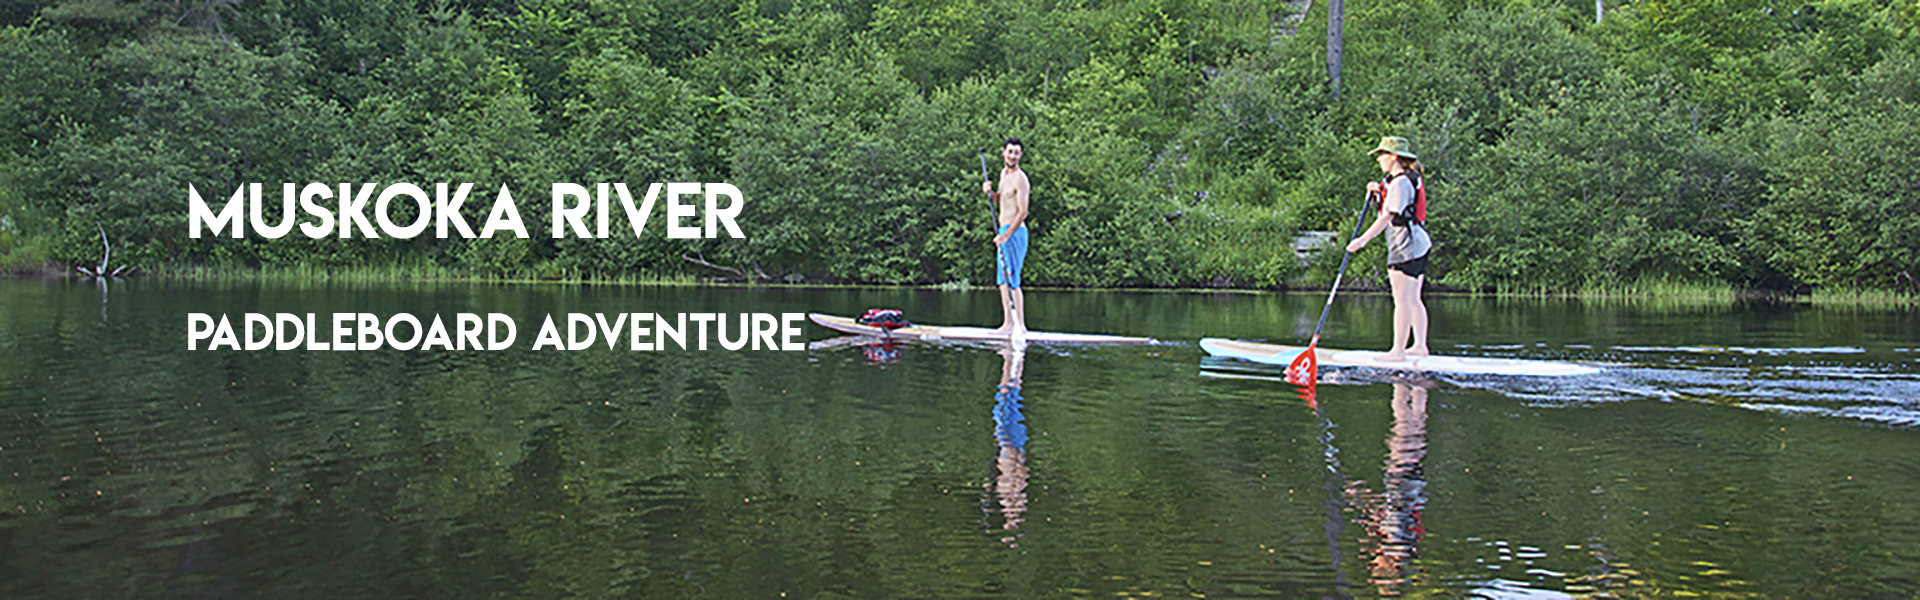 Muskoka River Paddleboard Rental